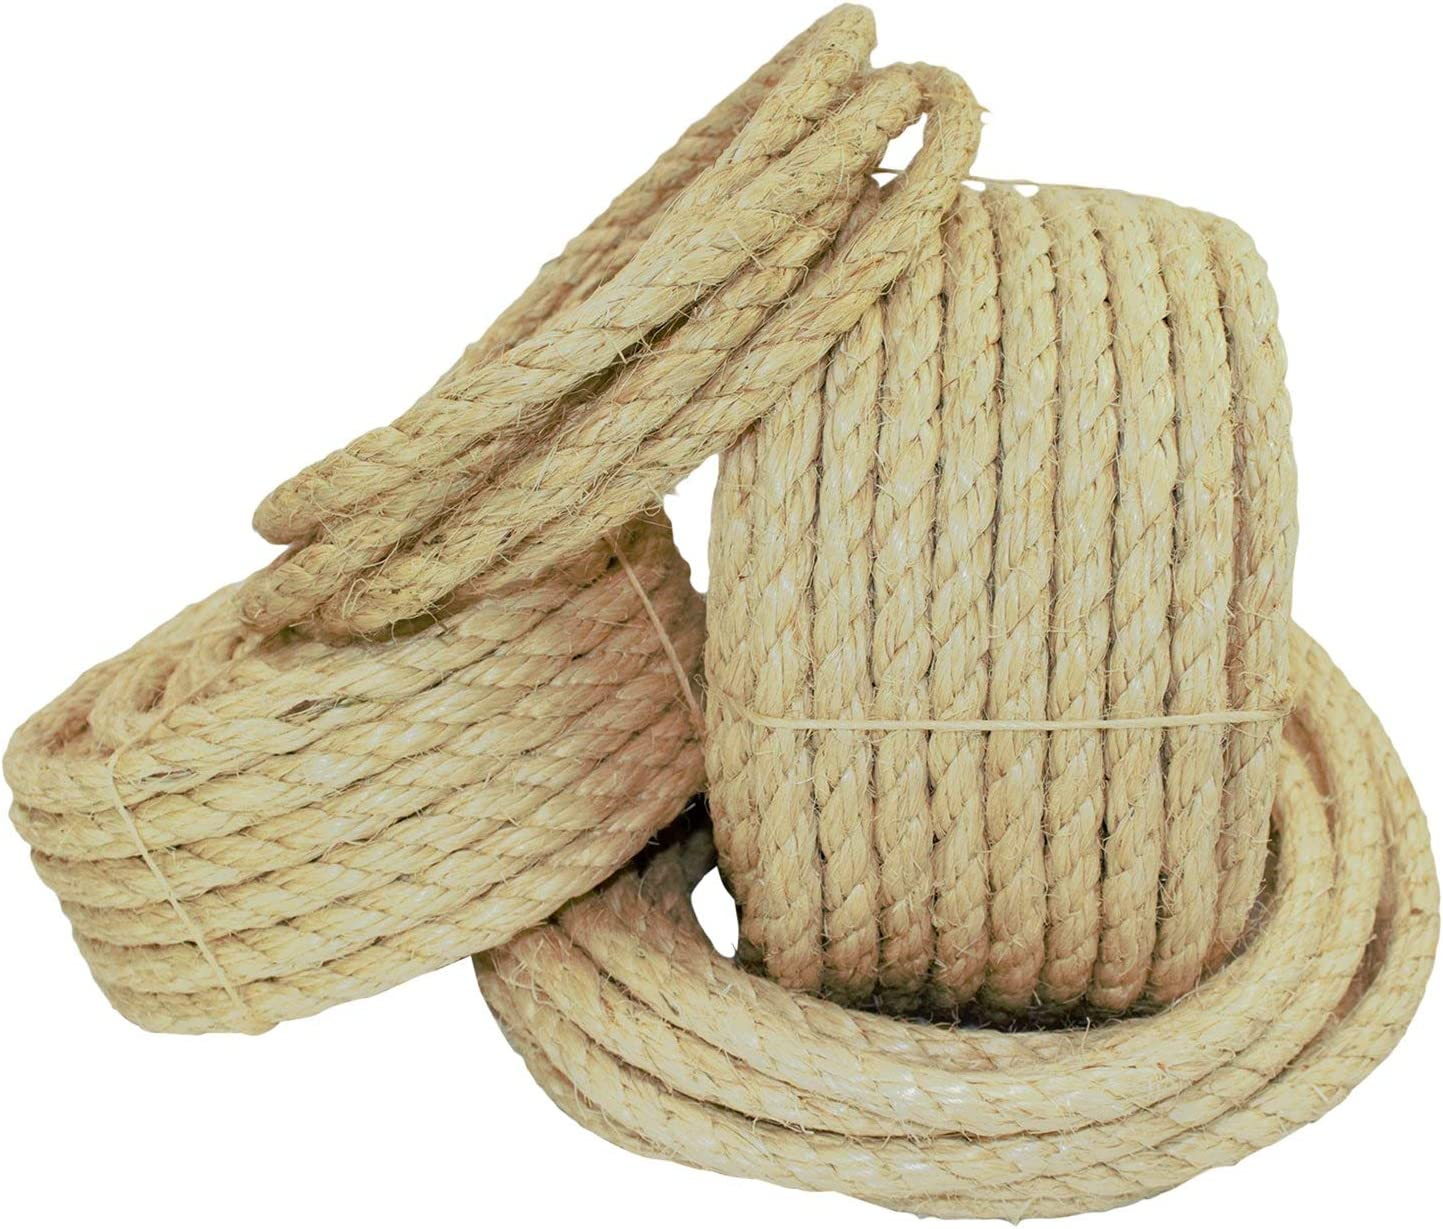 "SGT KNOTS Twisted Sisal Rope - Natural Fibers, Moisture & Weather Resistant Rope for Marine, Decor, Indoor/Outdoor Use (1/2"" x 10ft)"